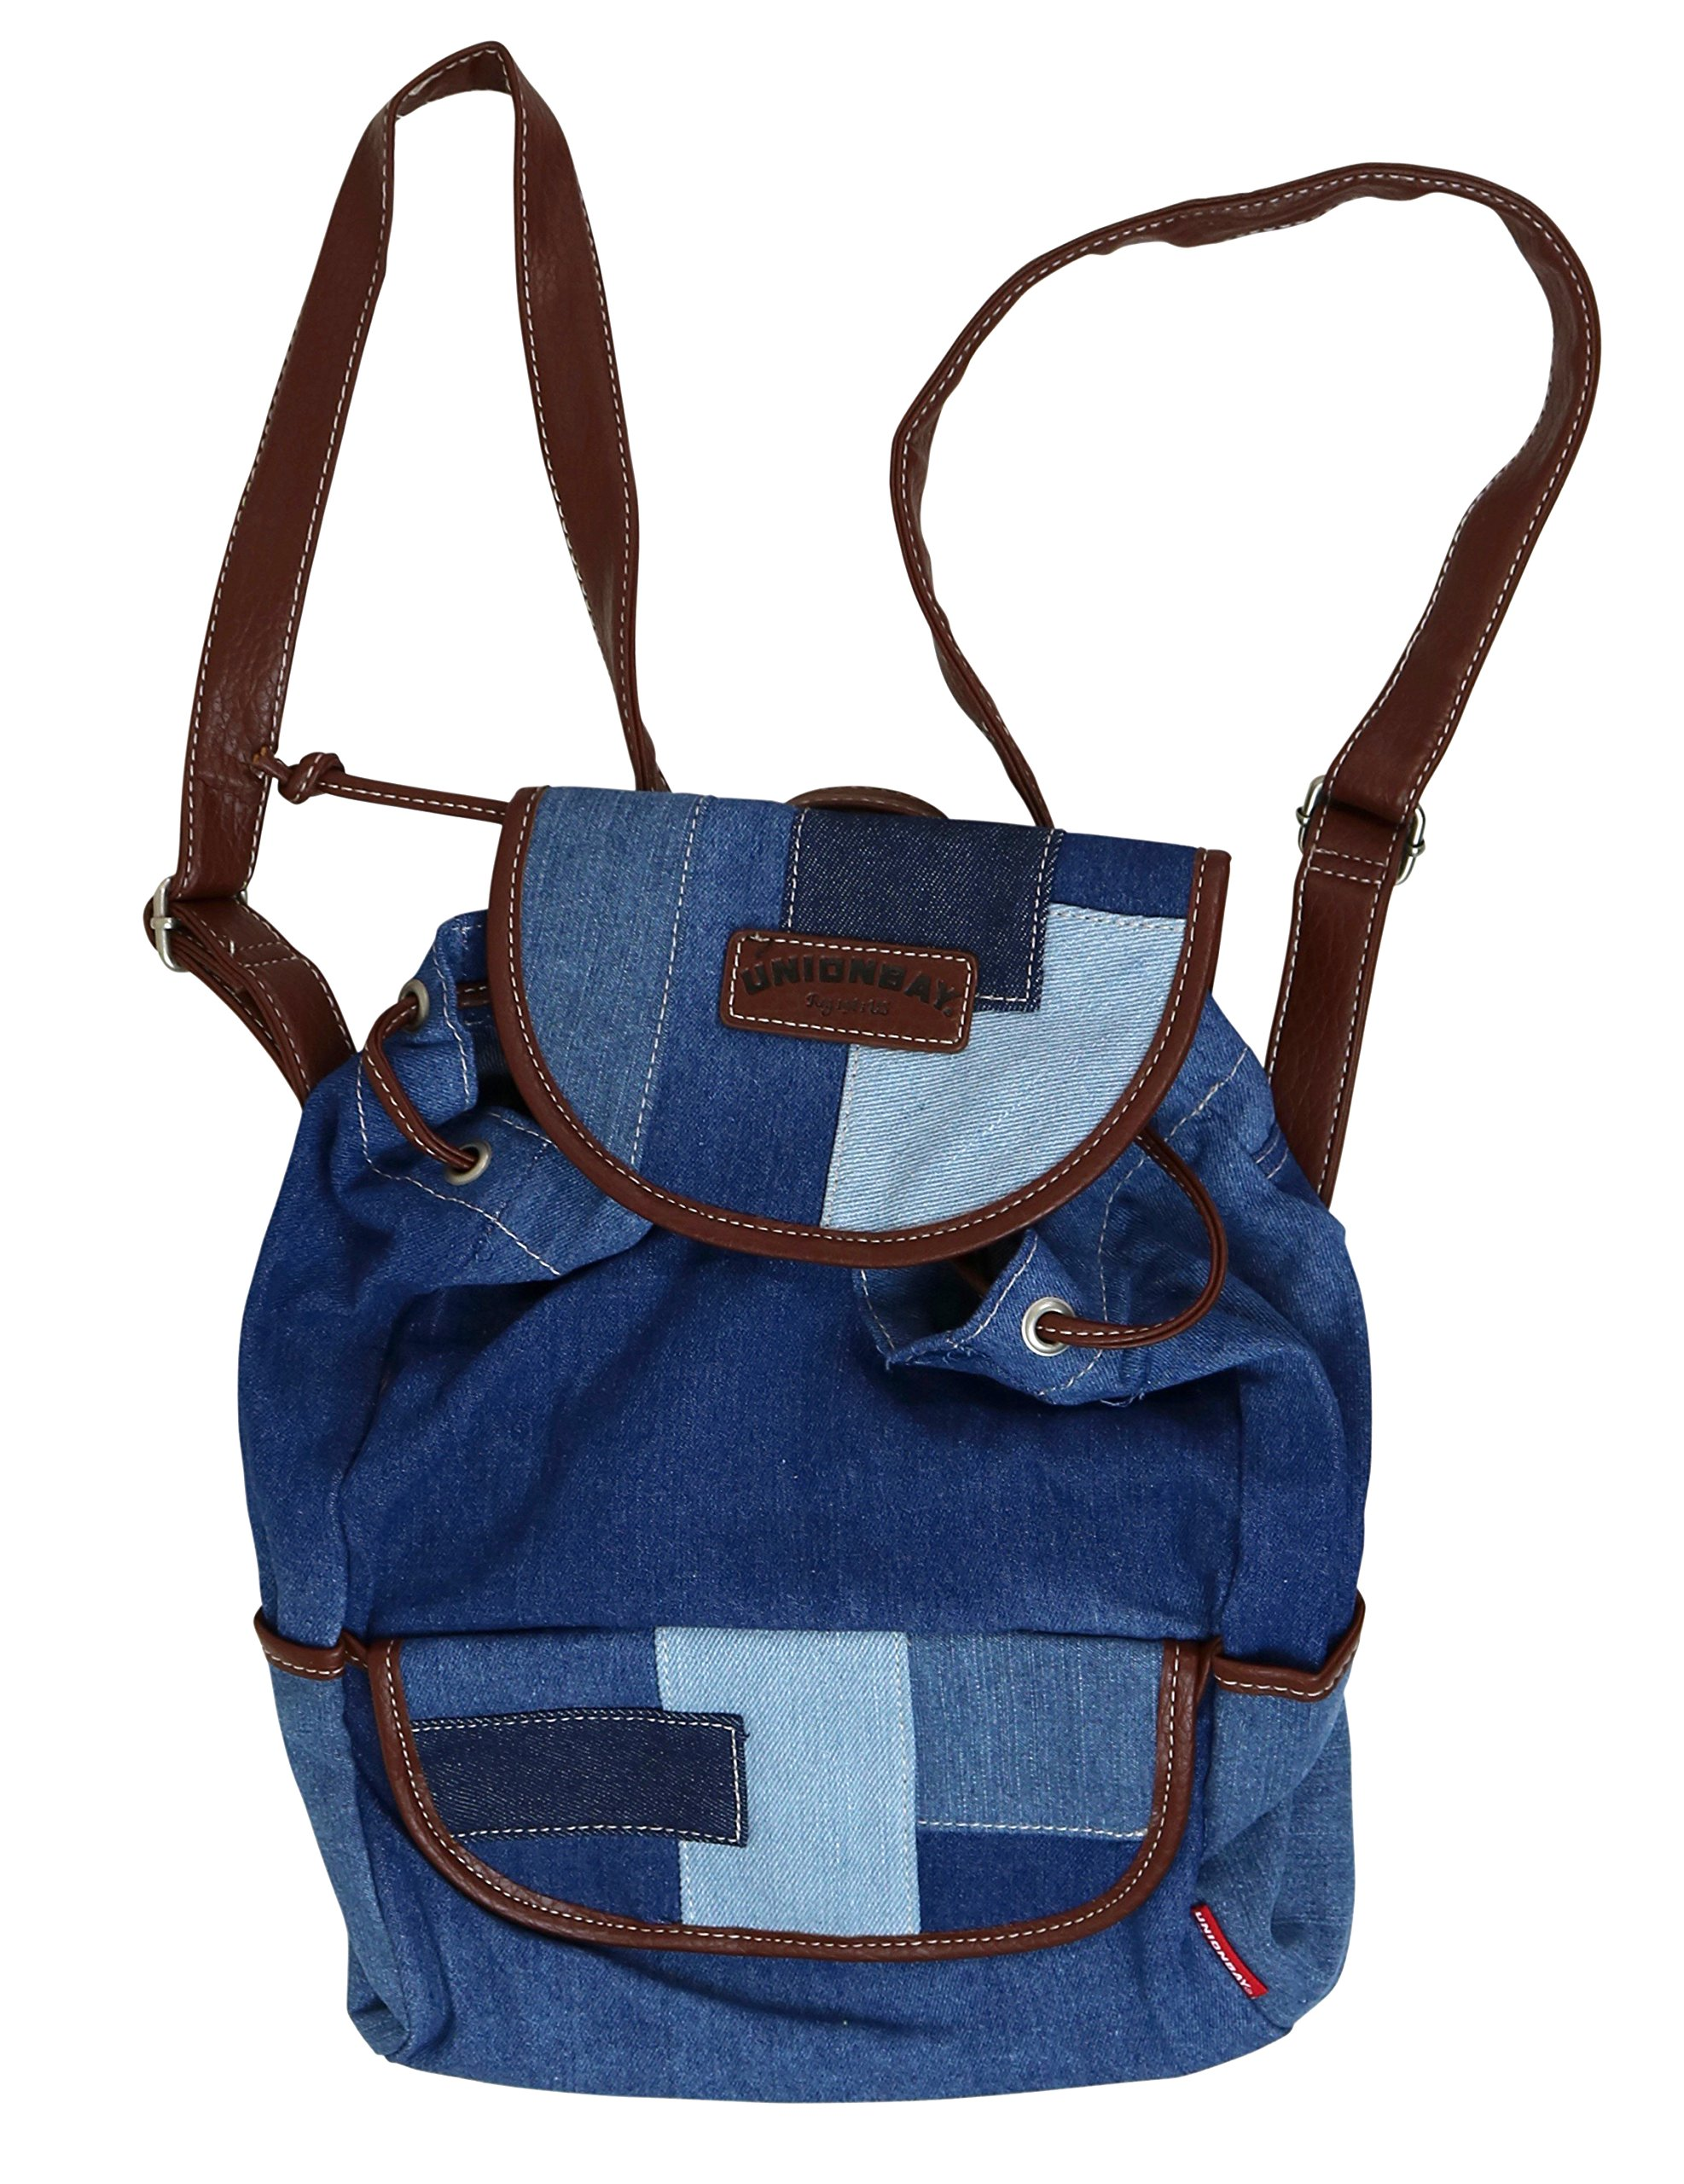 Unionbay Denim Backpack Handbag with Adjustable Faux Leather Straps by UNIONBAY (Image #3)